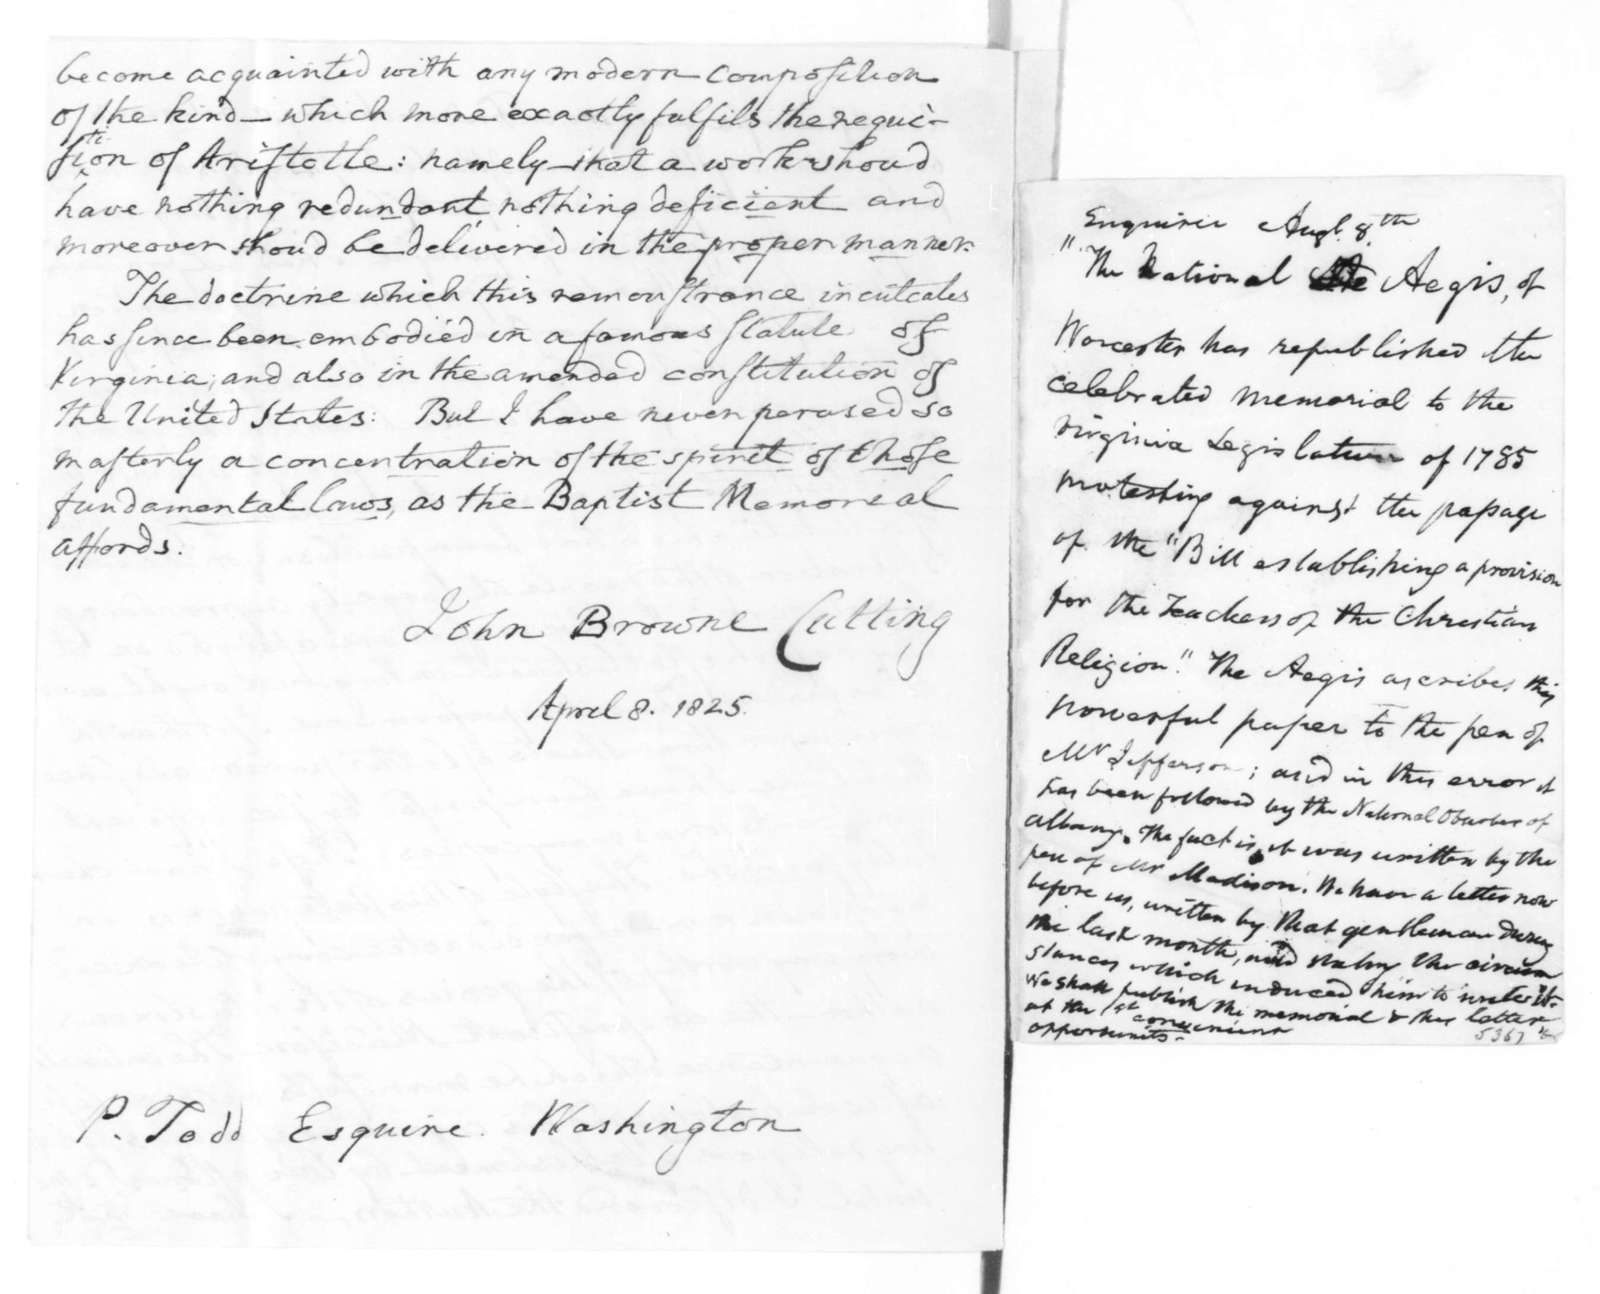 John B. Cutting to P. Todd, April 8, 1825. & Note by James Madison.